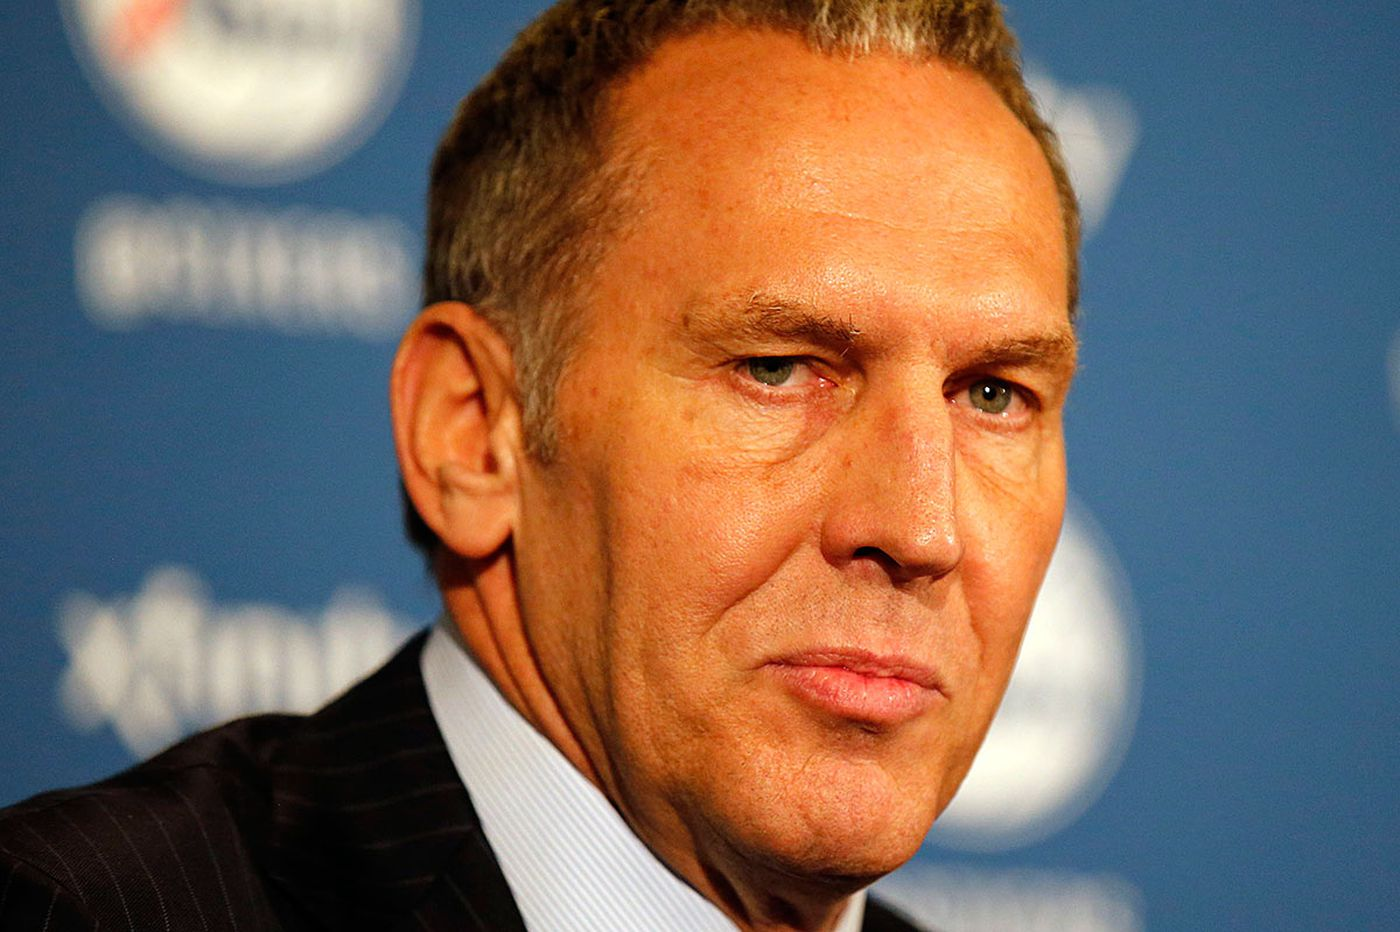 Bryan Colangelo on stepping down after Twitter-gate: 'It was a difficult decision and a difficult time for me' | Off the Dribble